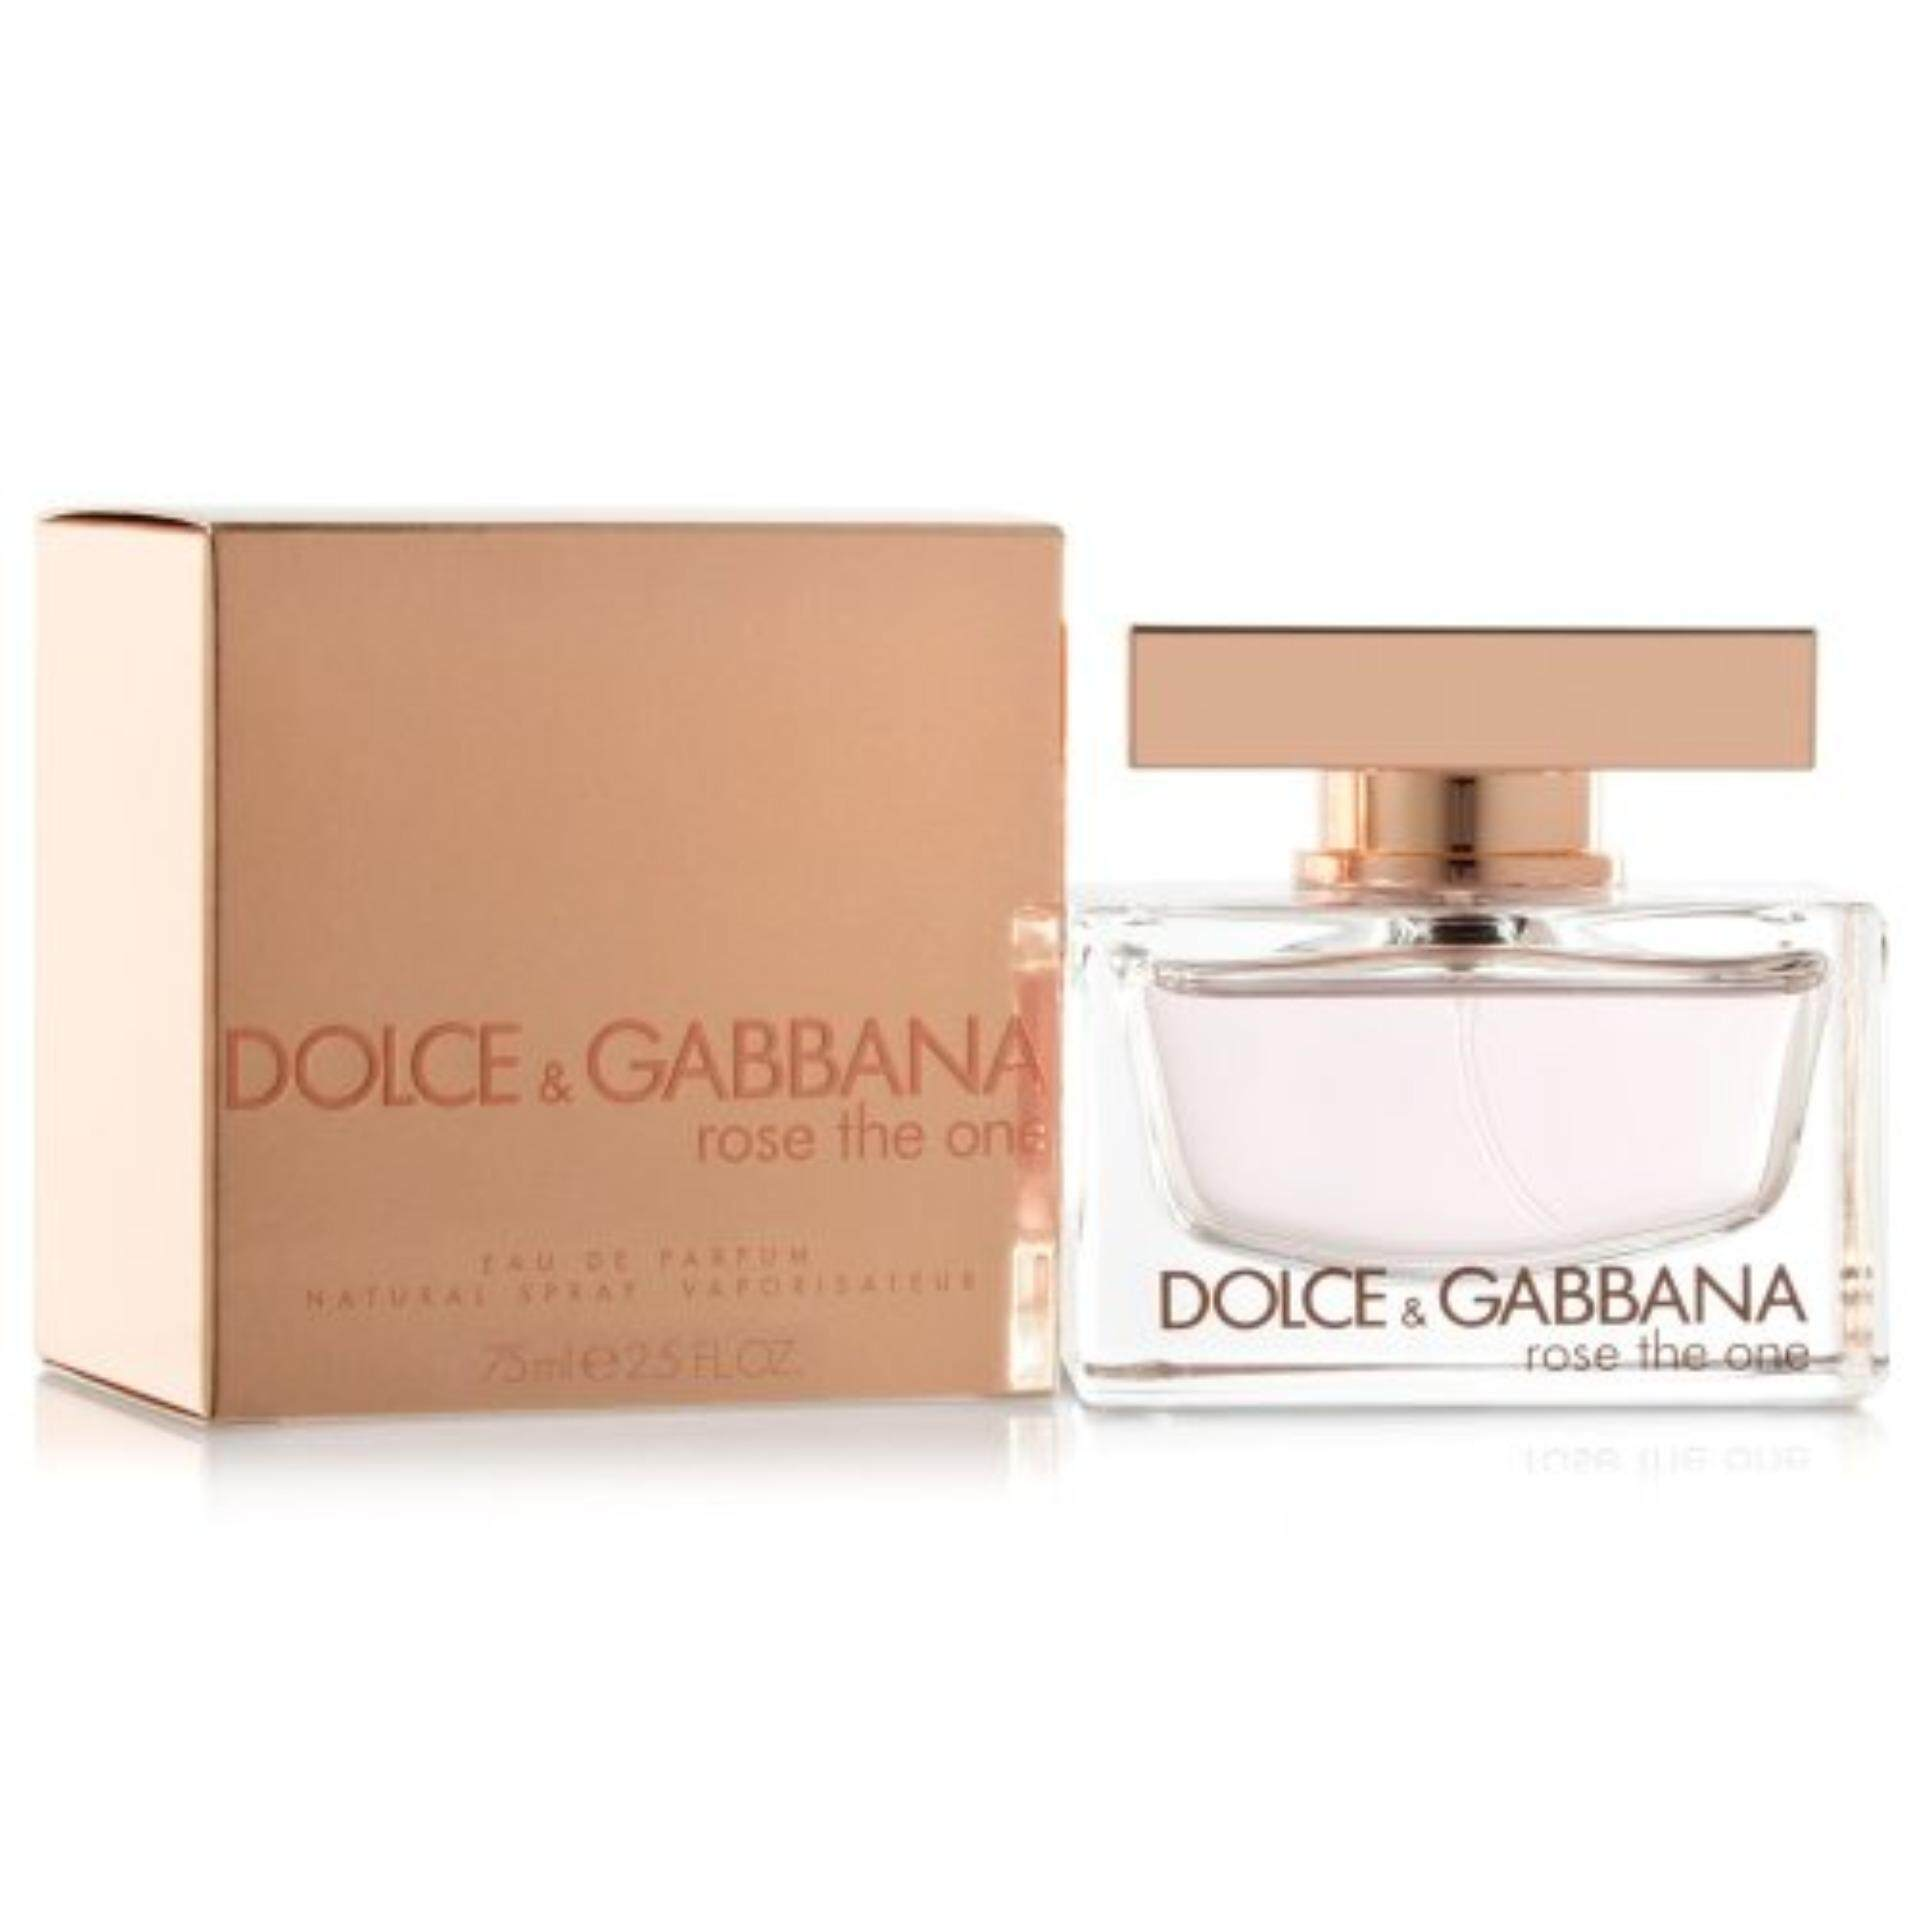 0e4ca6a5bd971 Dolce   Gabbana Health   Beauty - Fragrances price in Malaysia ...